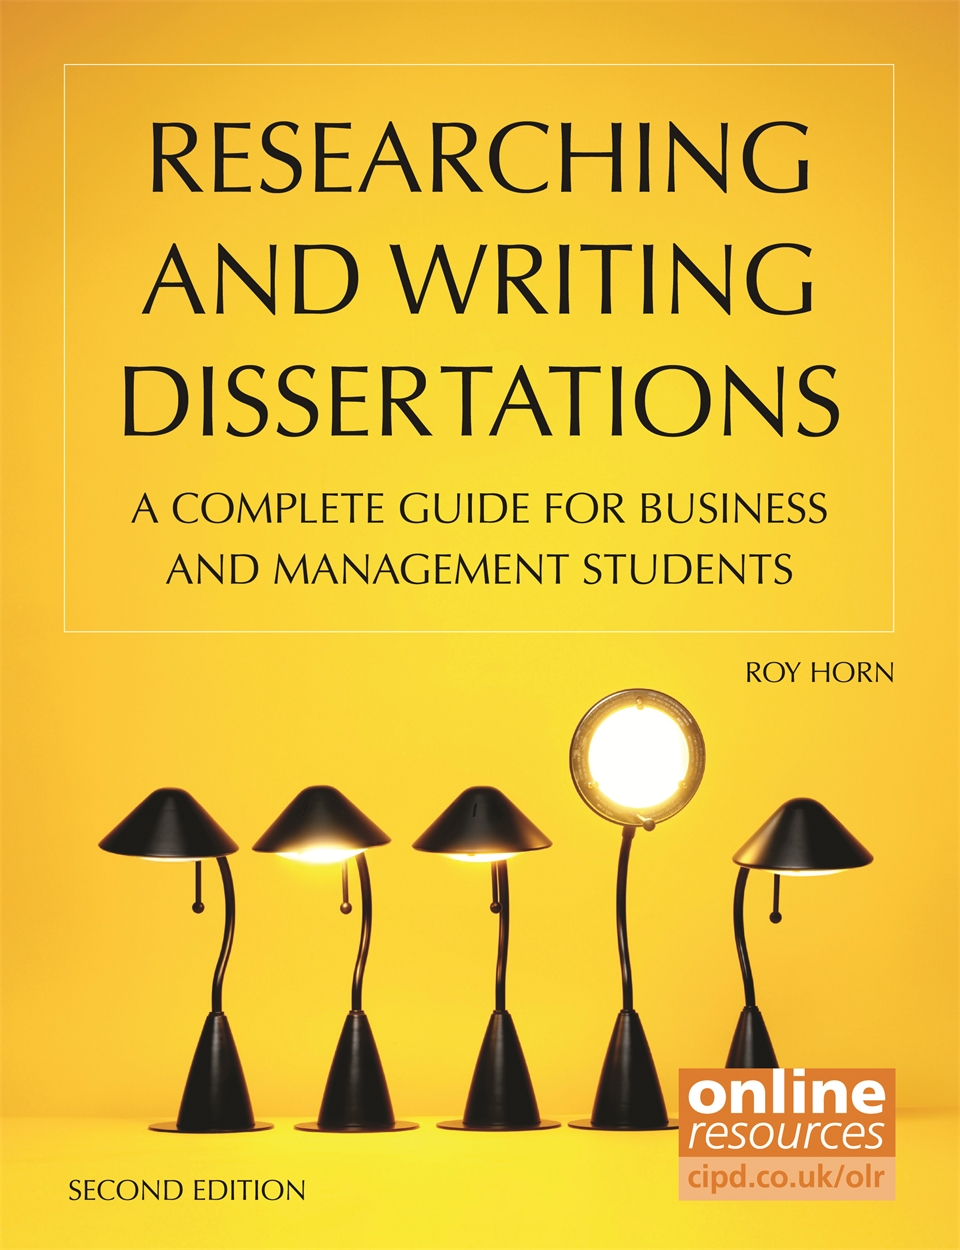 Dissertation skills for business and management students